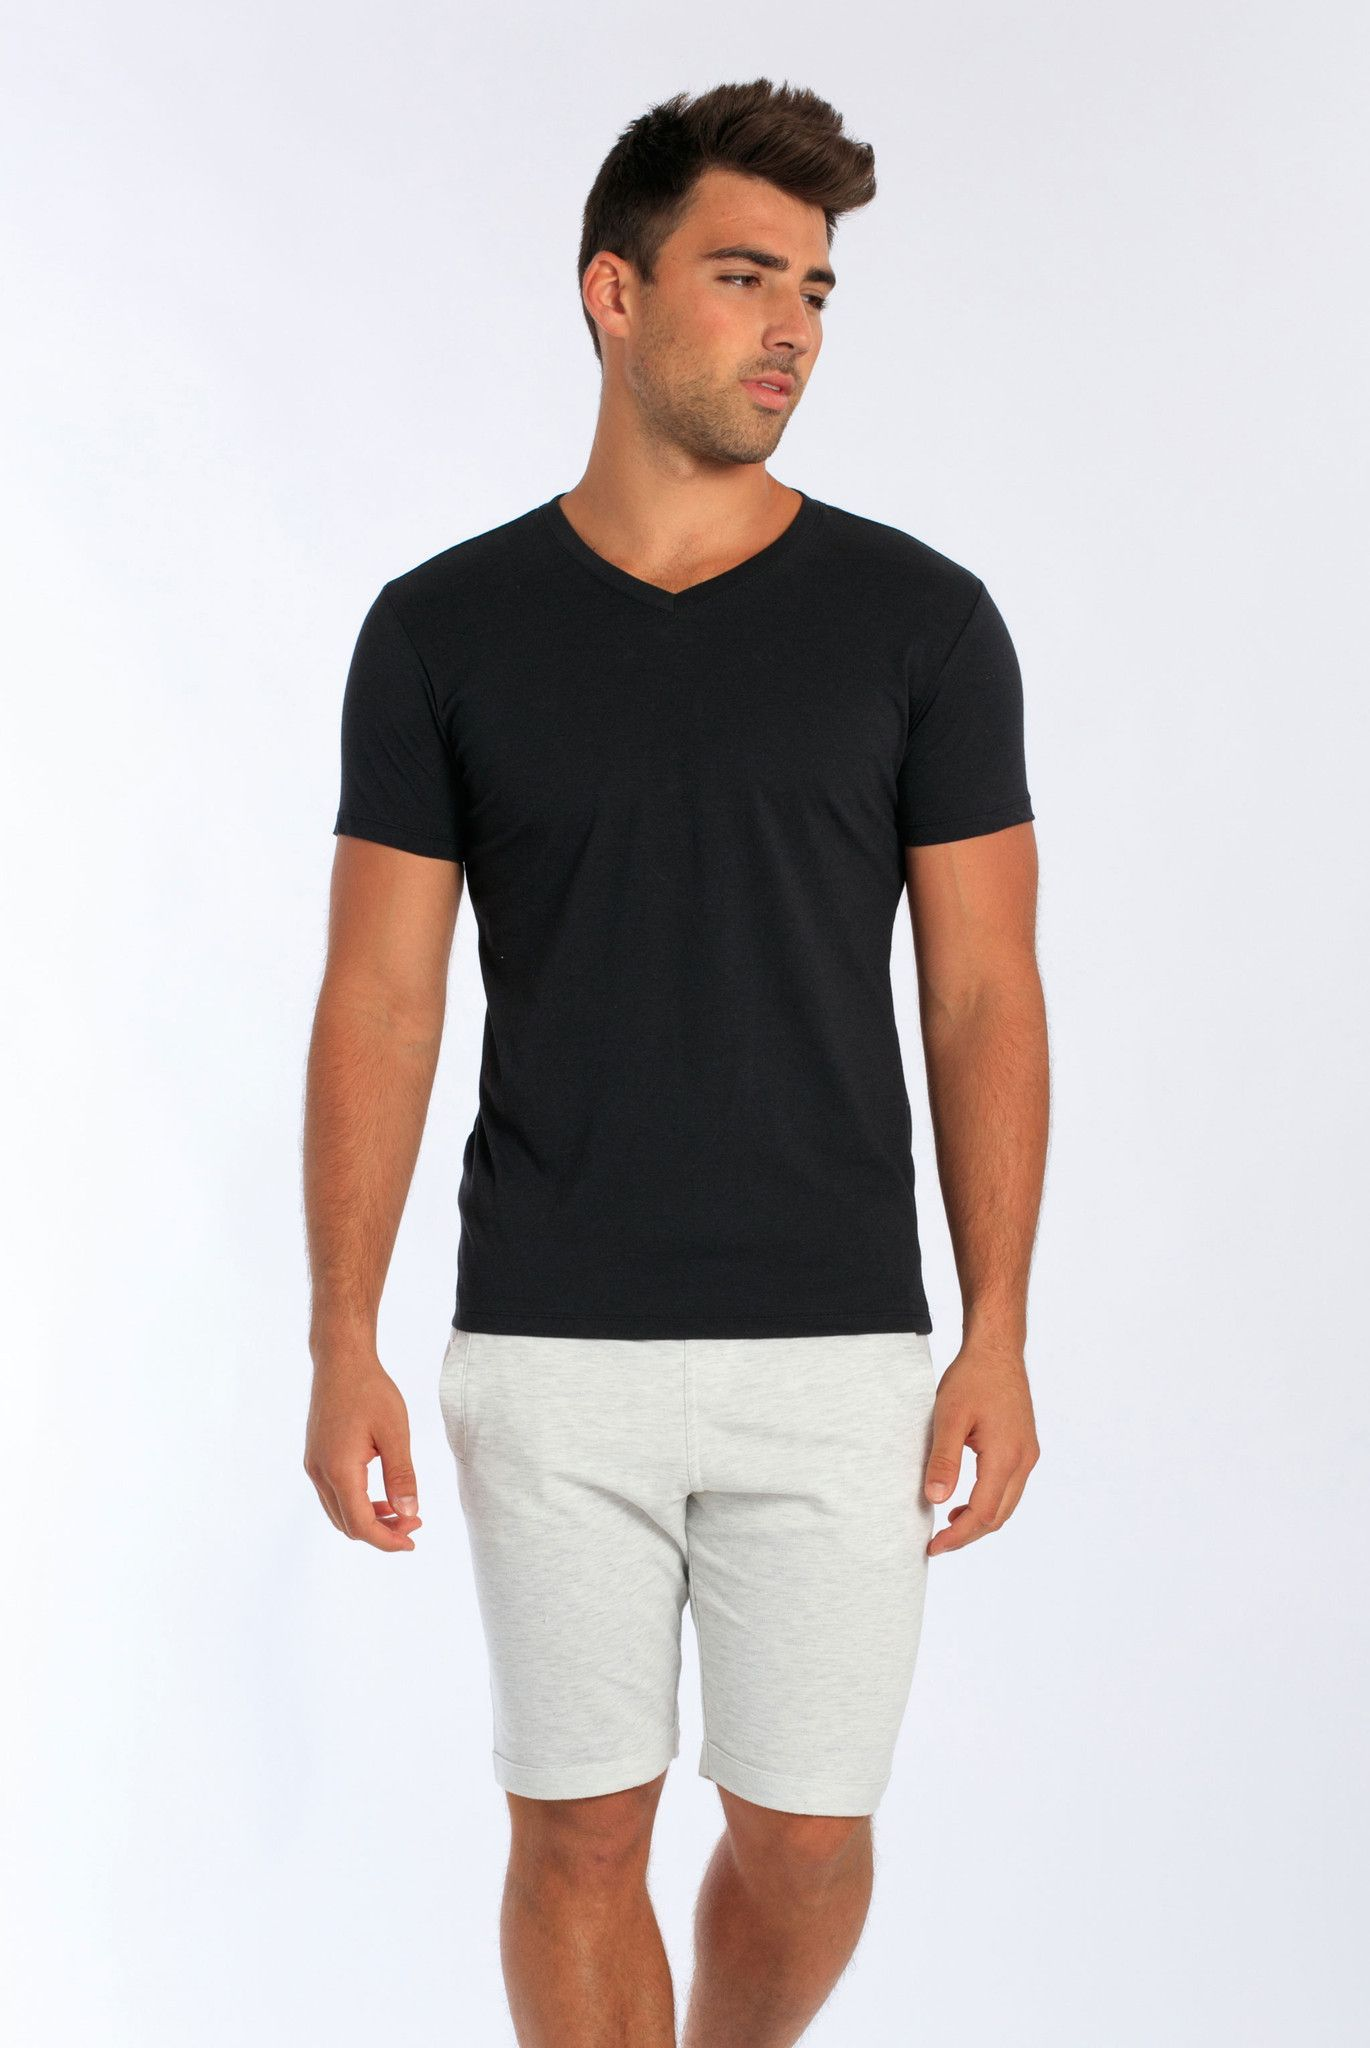 Miami Style® - Men's V-Neck Fitted Fine Jersey Tee